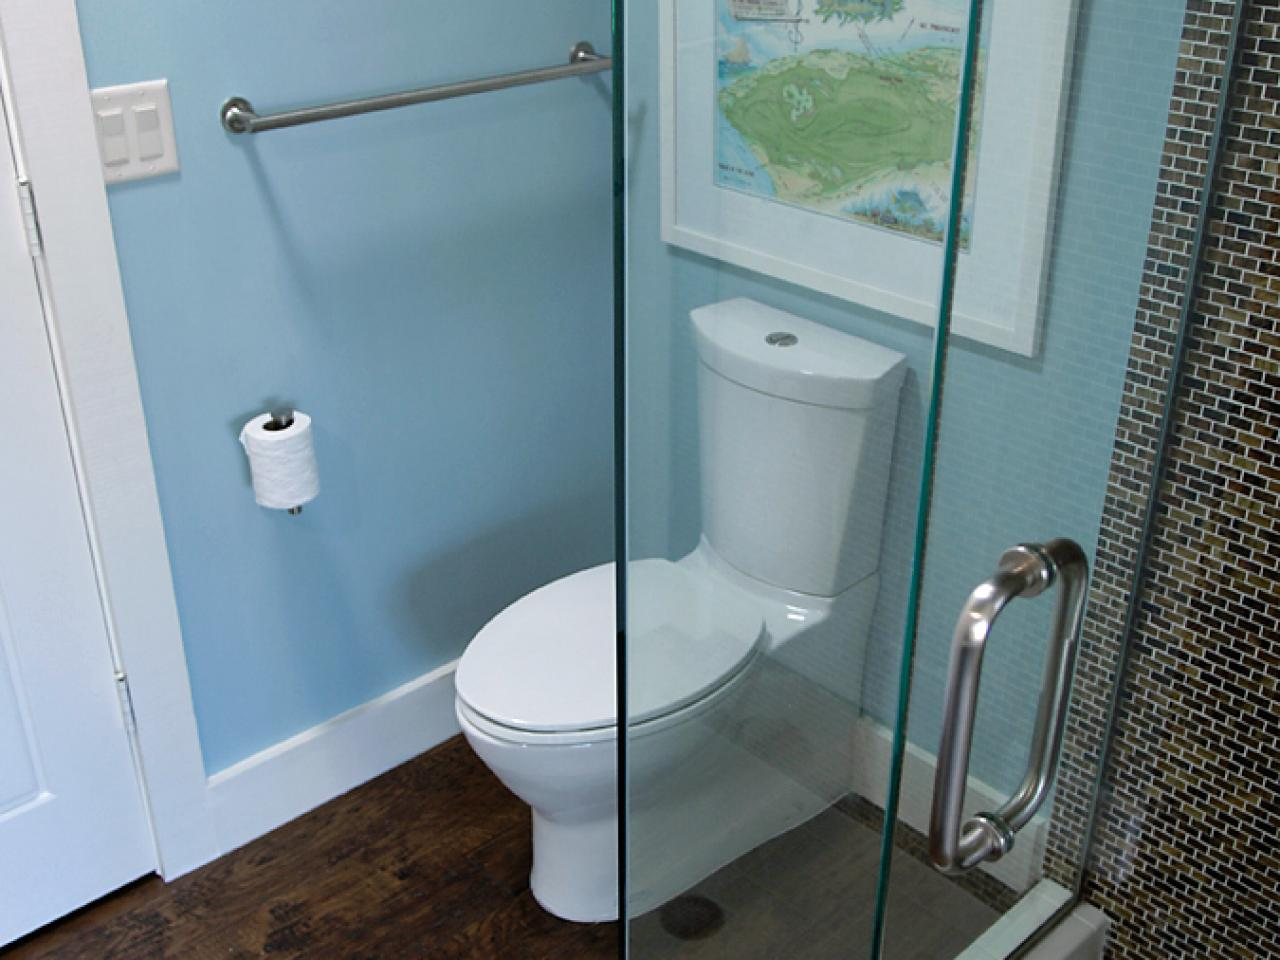 Design Toilette The Lowdown On Low Flow Toilets Hgtv